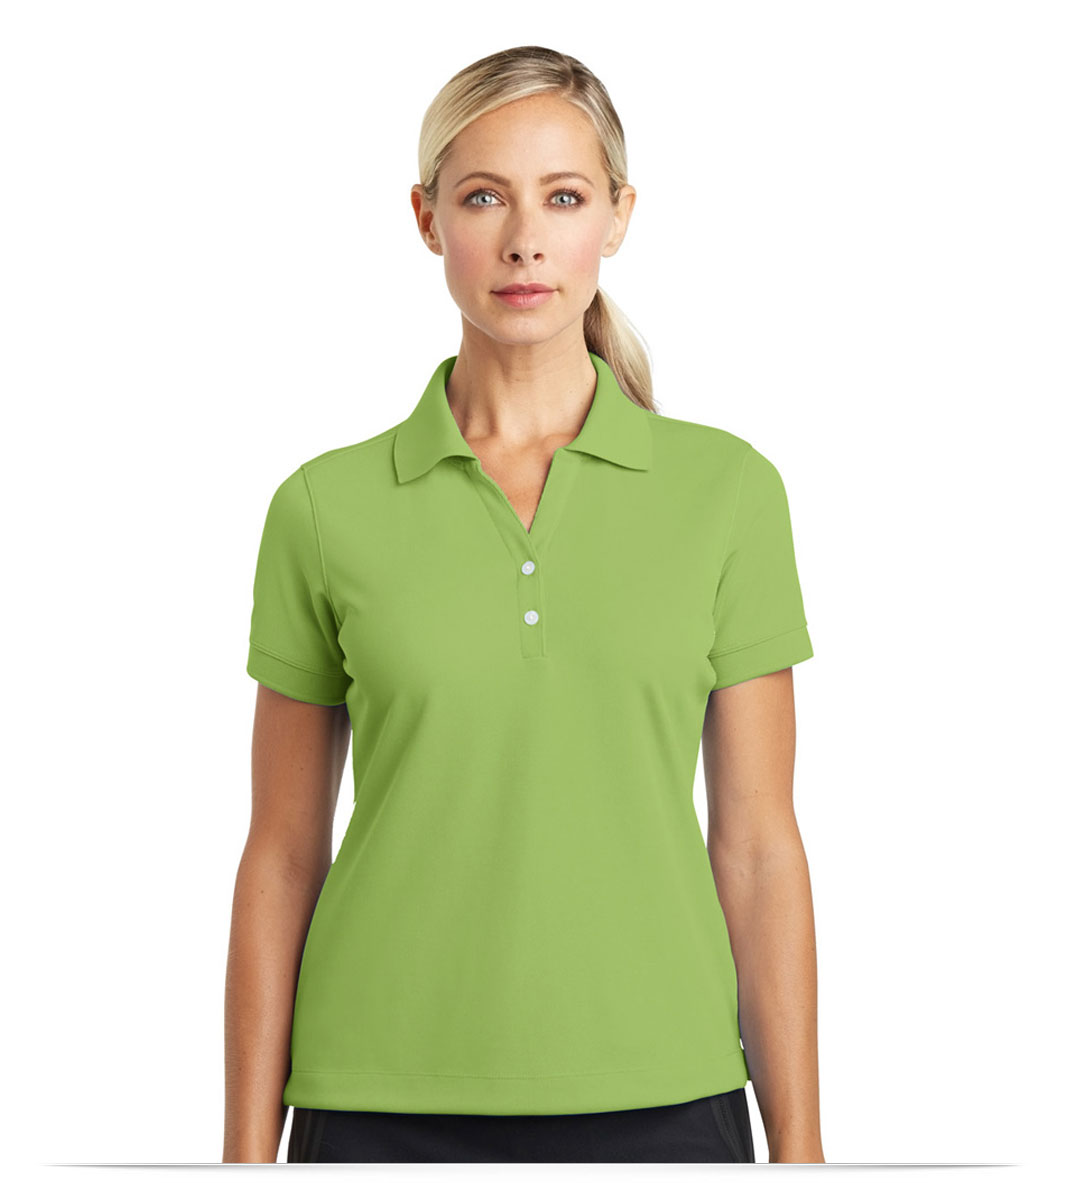 Design embroidered customized women 39 s nike golf shirt online for Custom adidas dri fit shirts